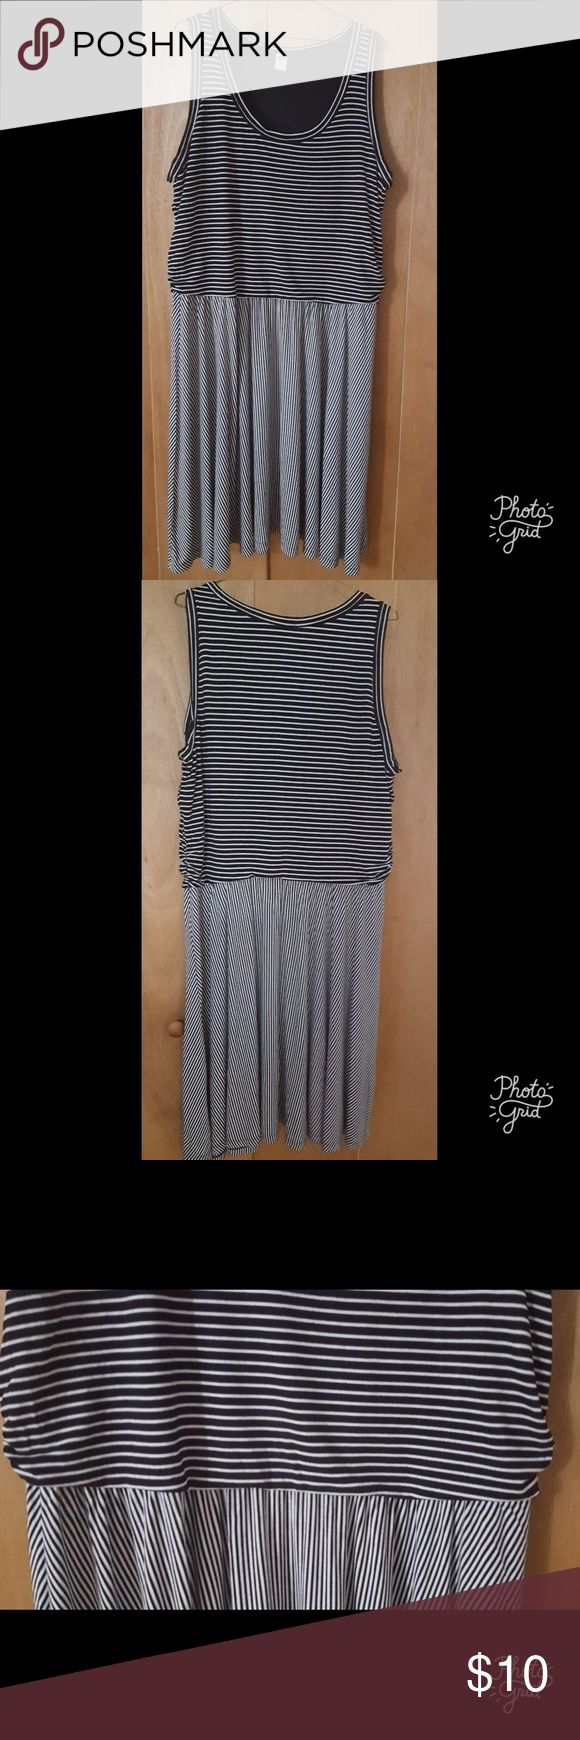 Old Navy Striped dress Black and white fit and flare dress Old Navy Dresses